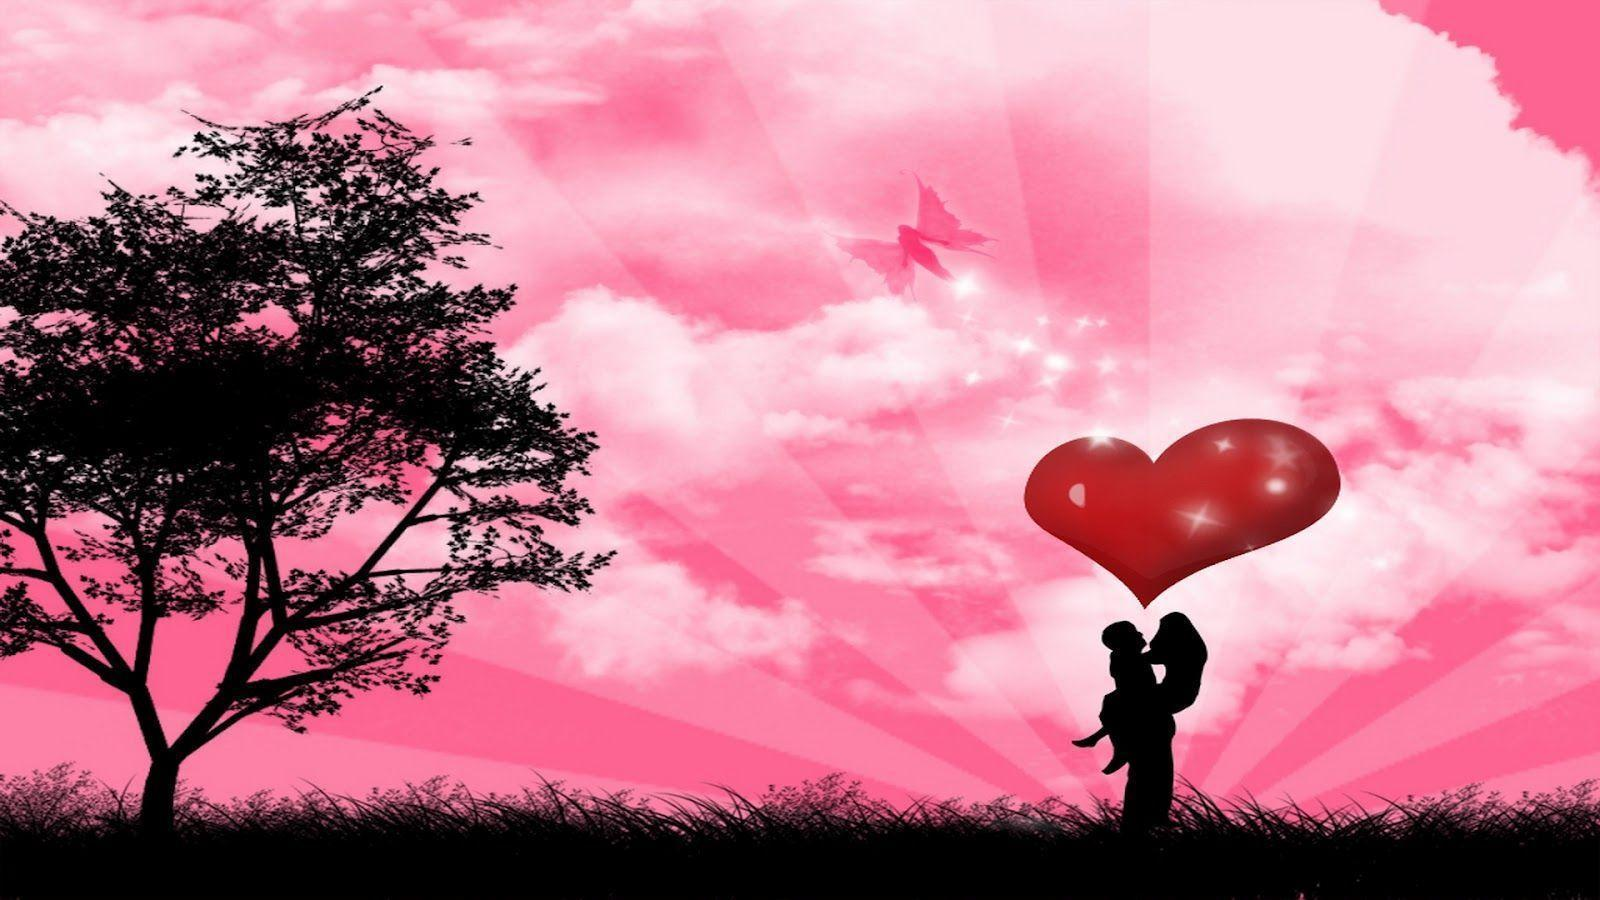 Love Romantic Wallpapers - Wallpaper cave